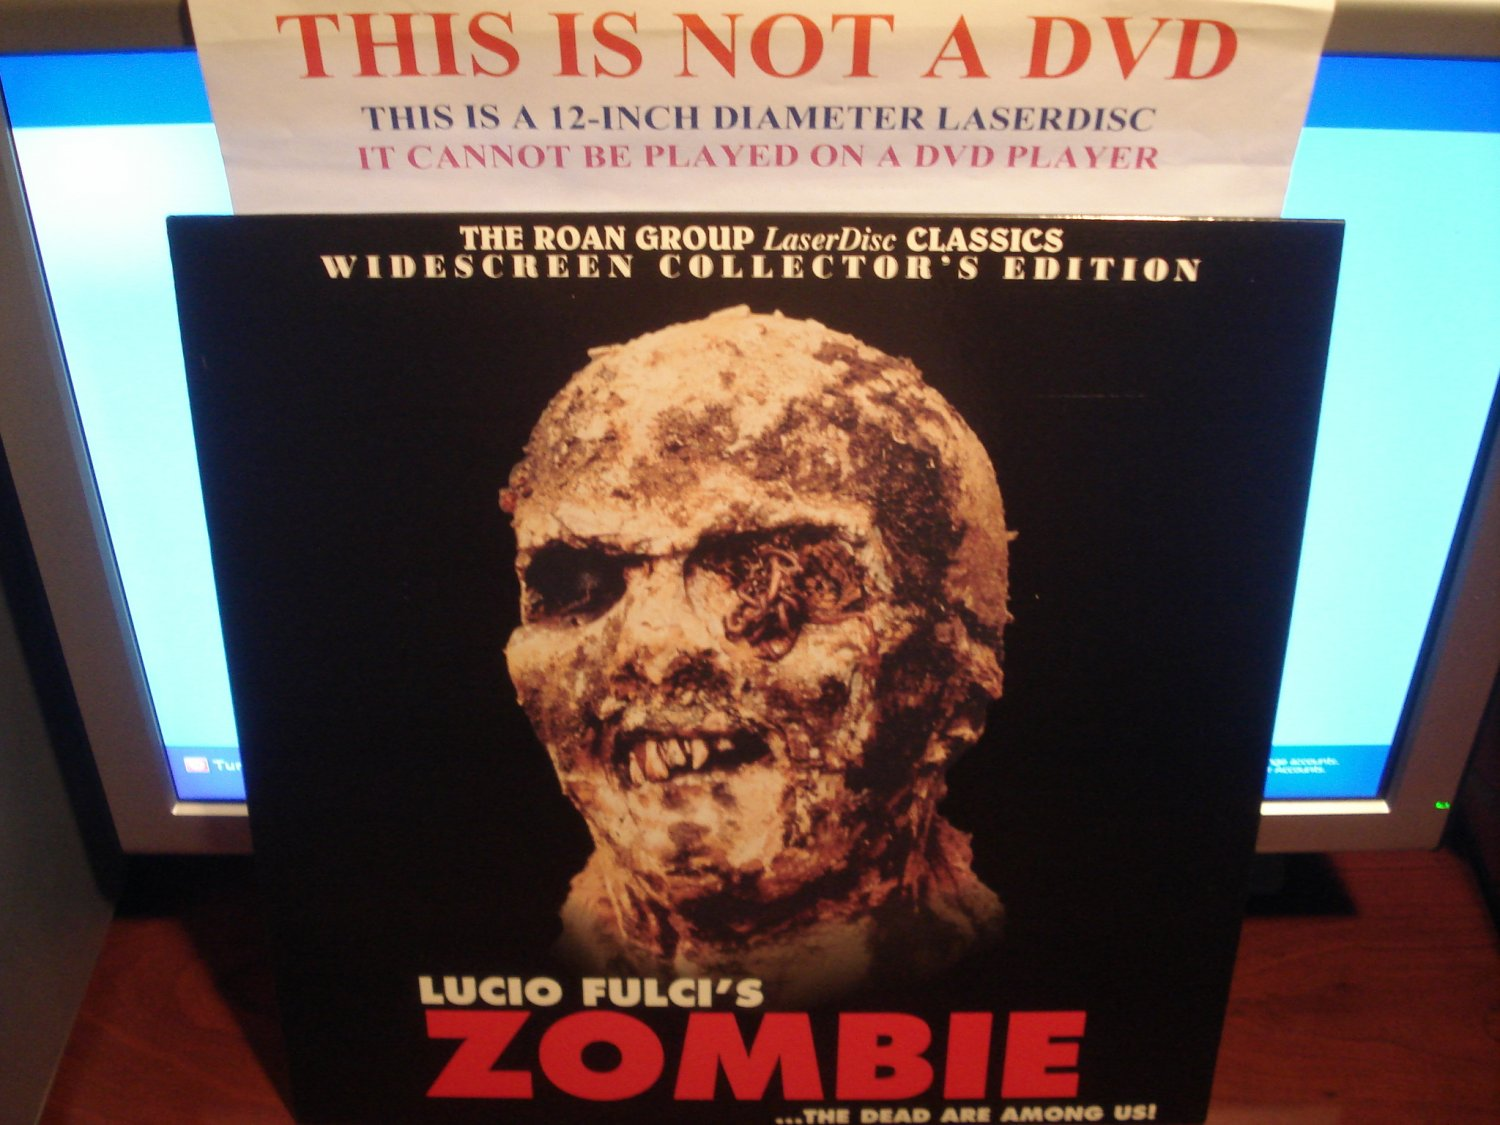 Laserdisc ZOMBIE (1979) Lucio Fulci The Roan Group LTBX Collector's Edition Classic LD